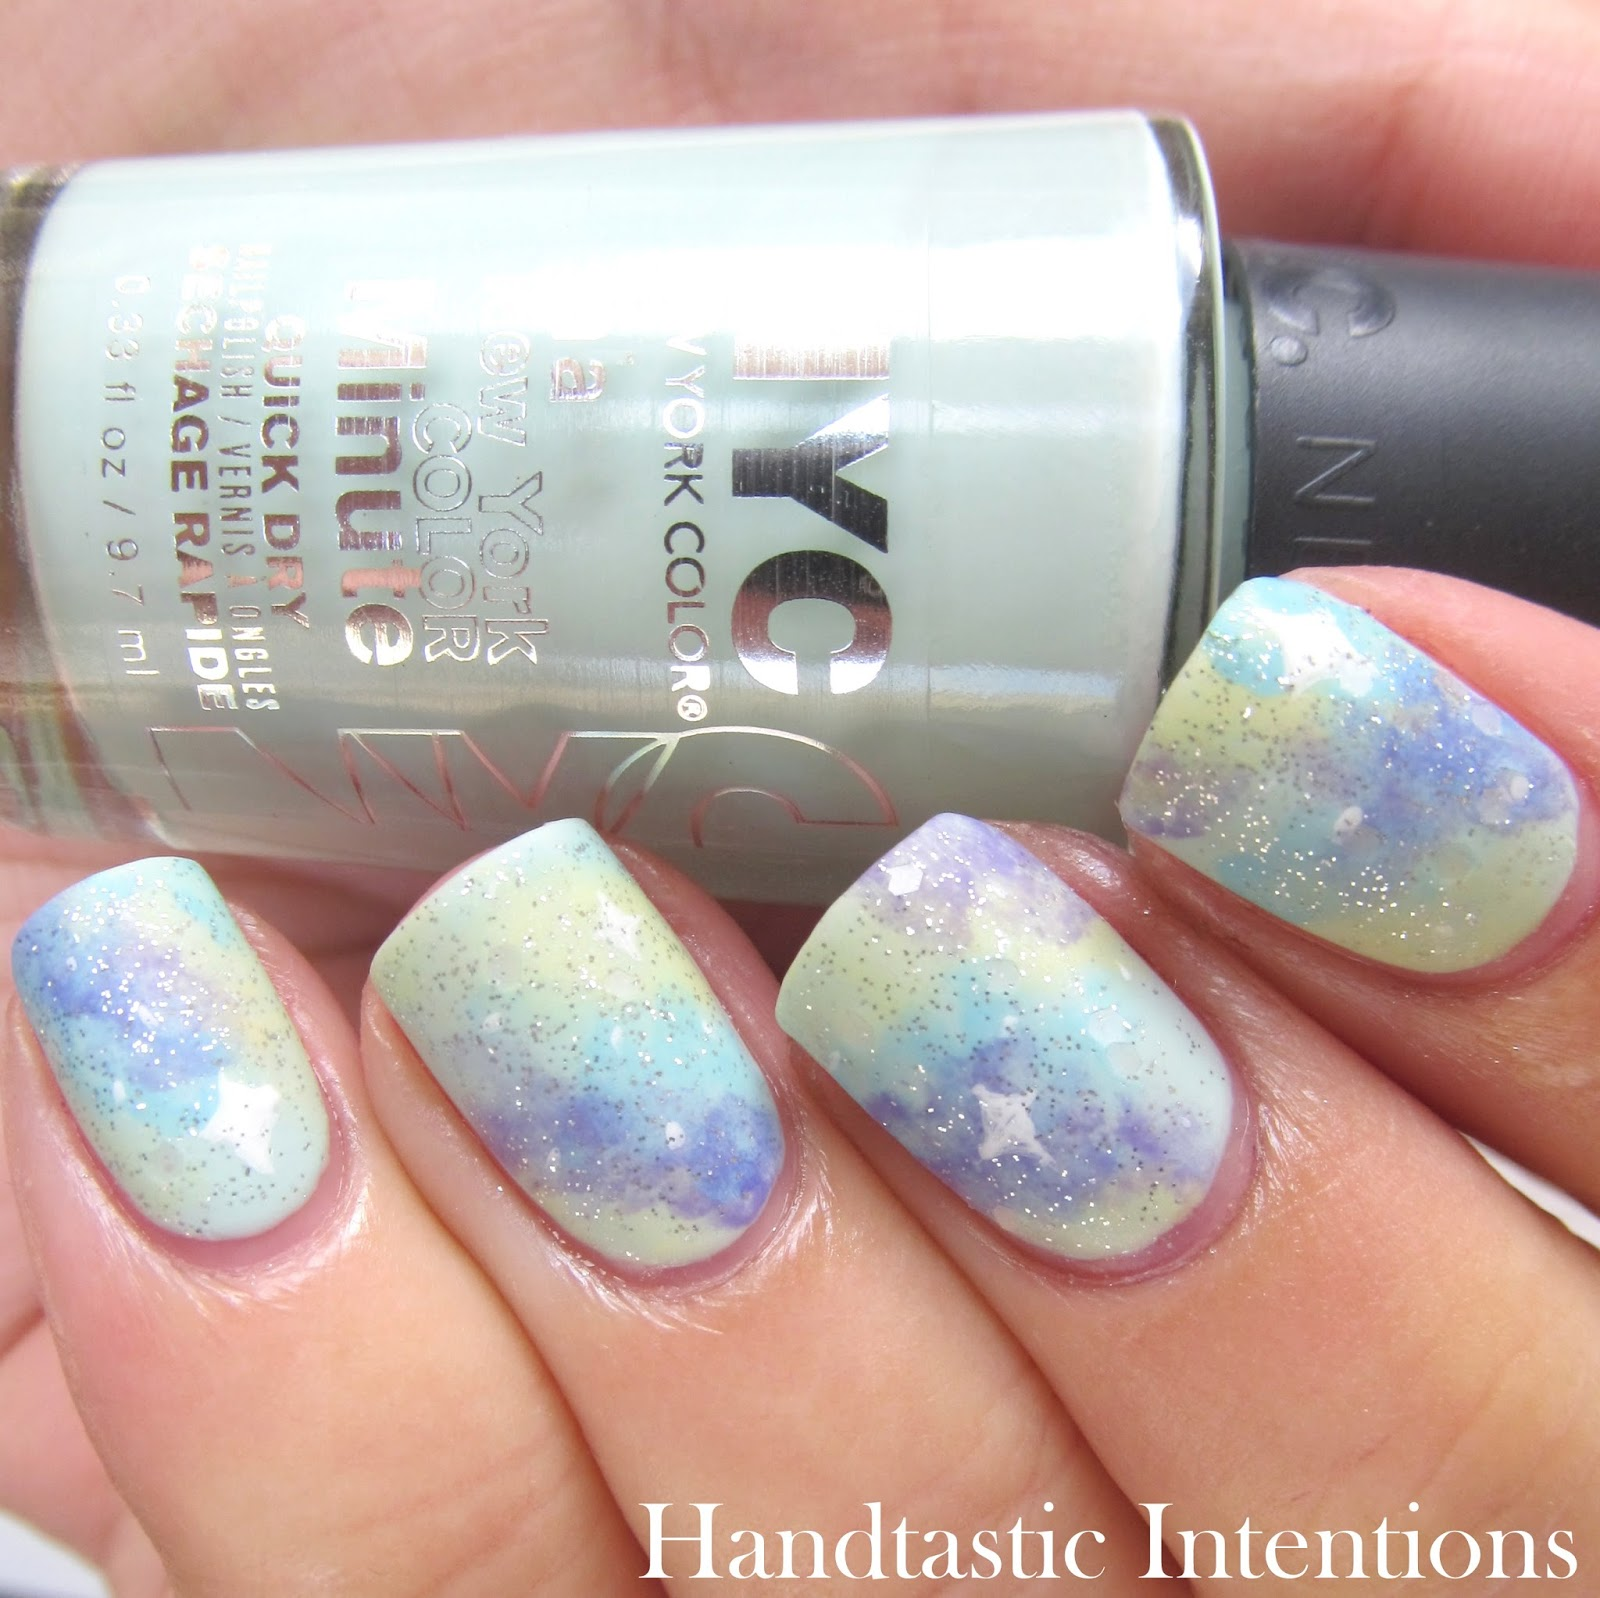 Handtastic Intentions: Nail Art: #31DC2014 Day 19 Galaxy Nails